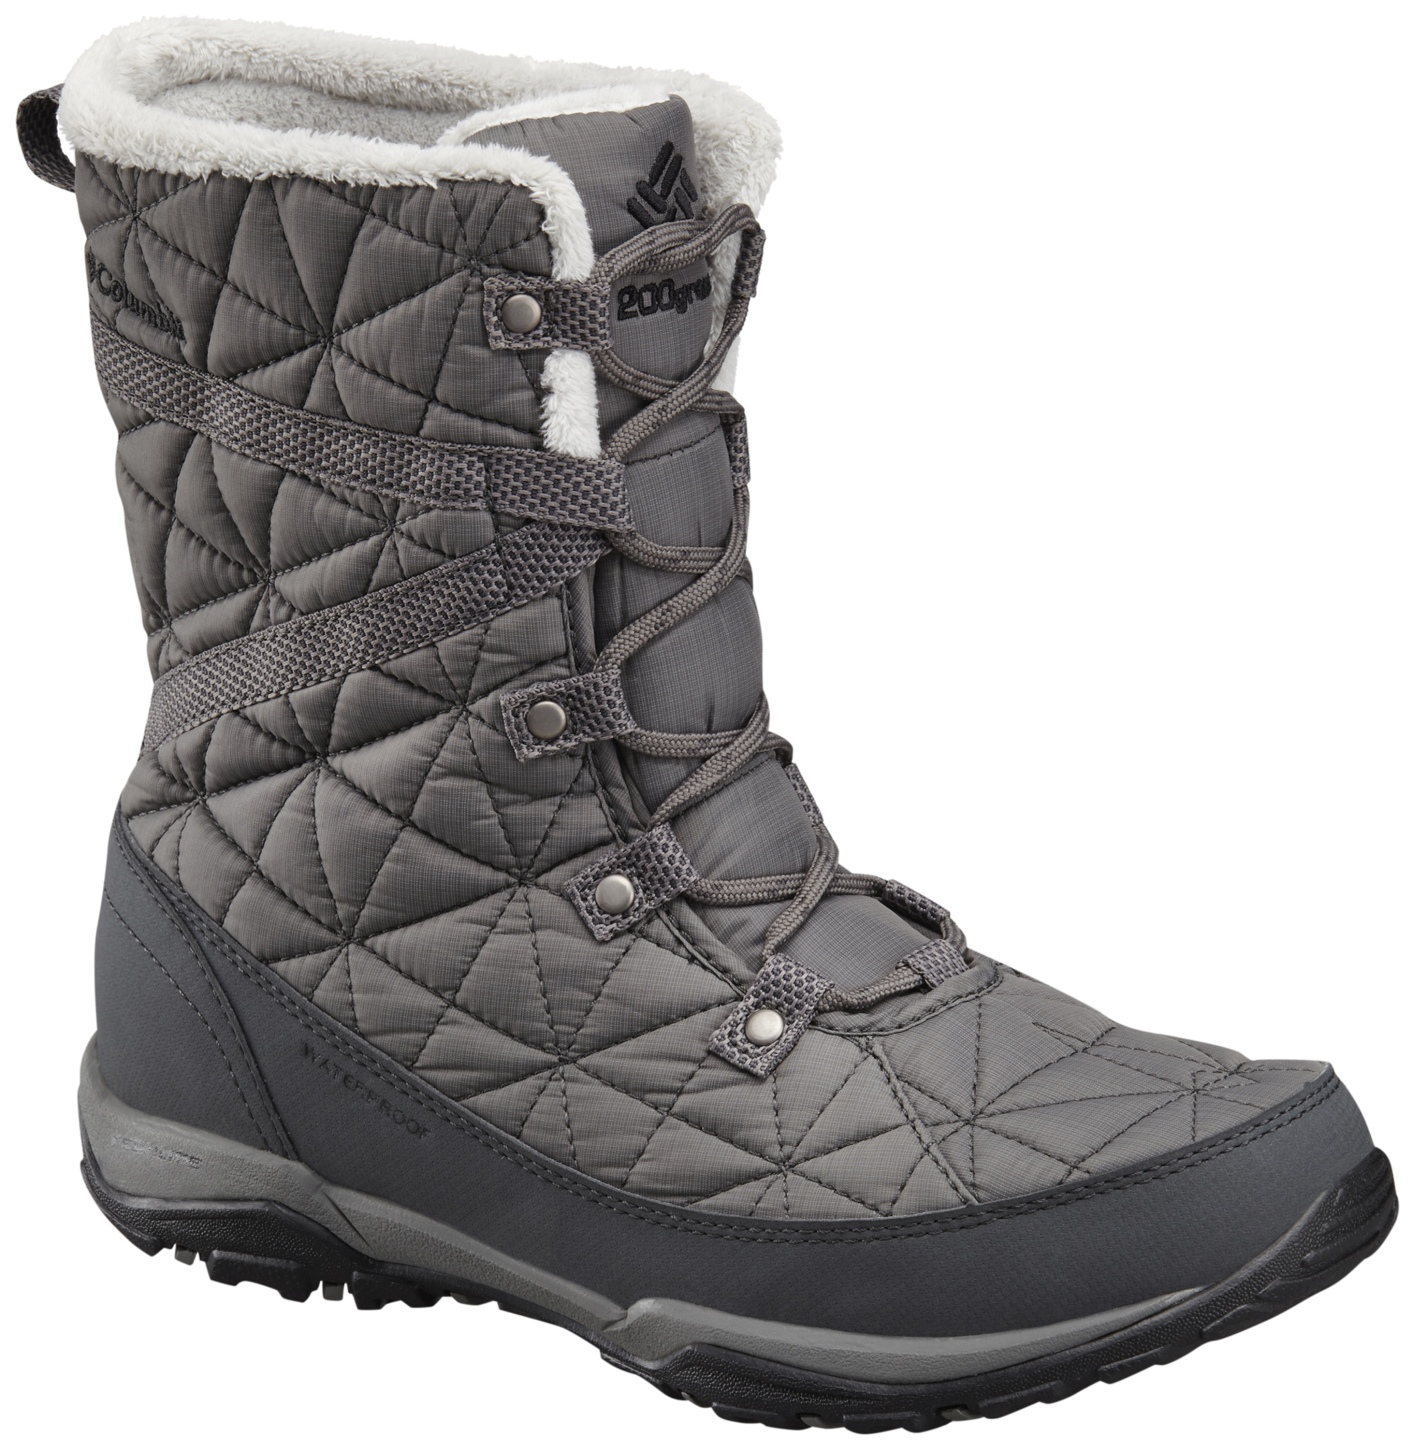 Columbia Loveland Mid Omni-heat Wasserfeste Winterstiefel für Damen Quarry, Black-30